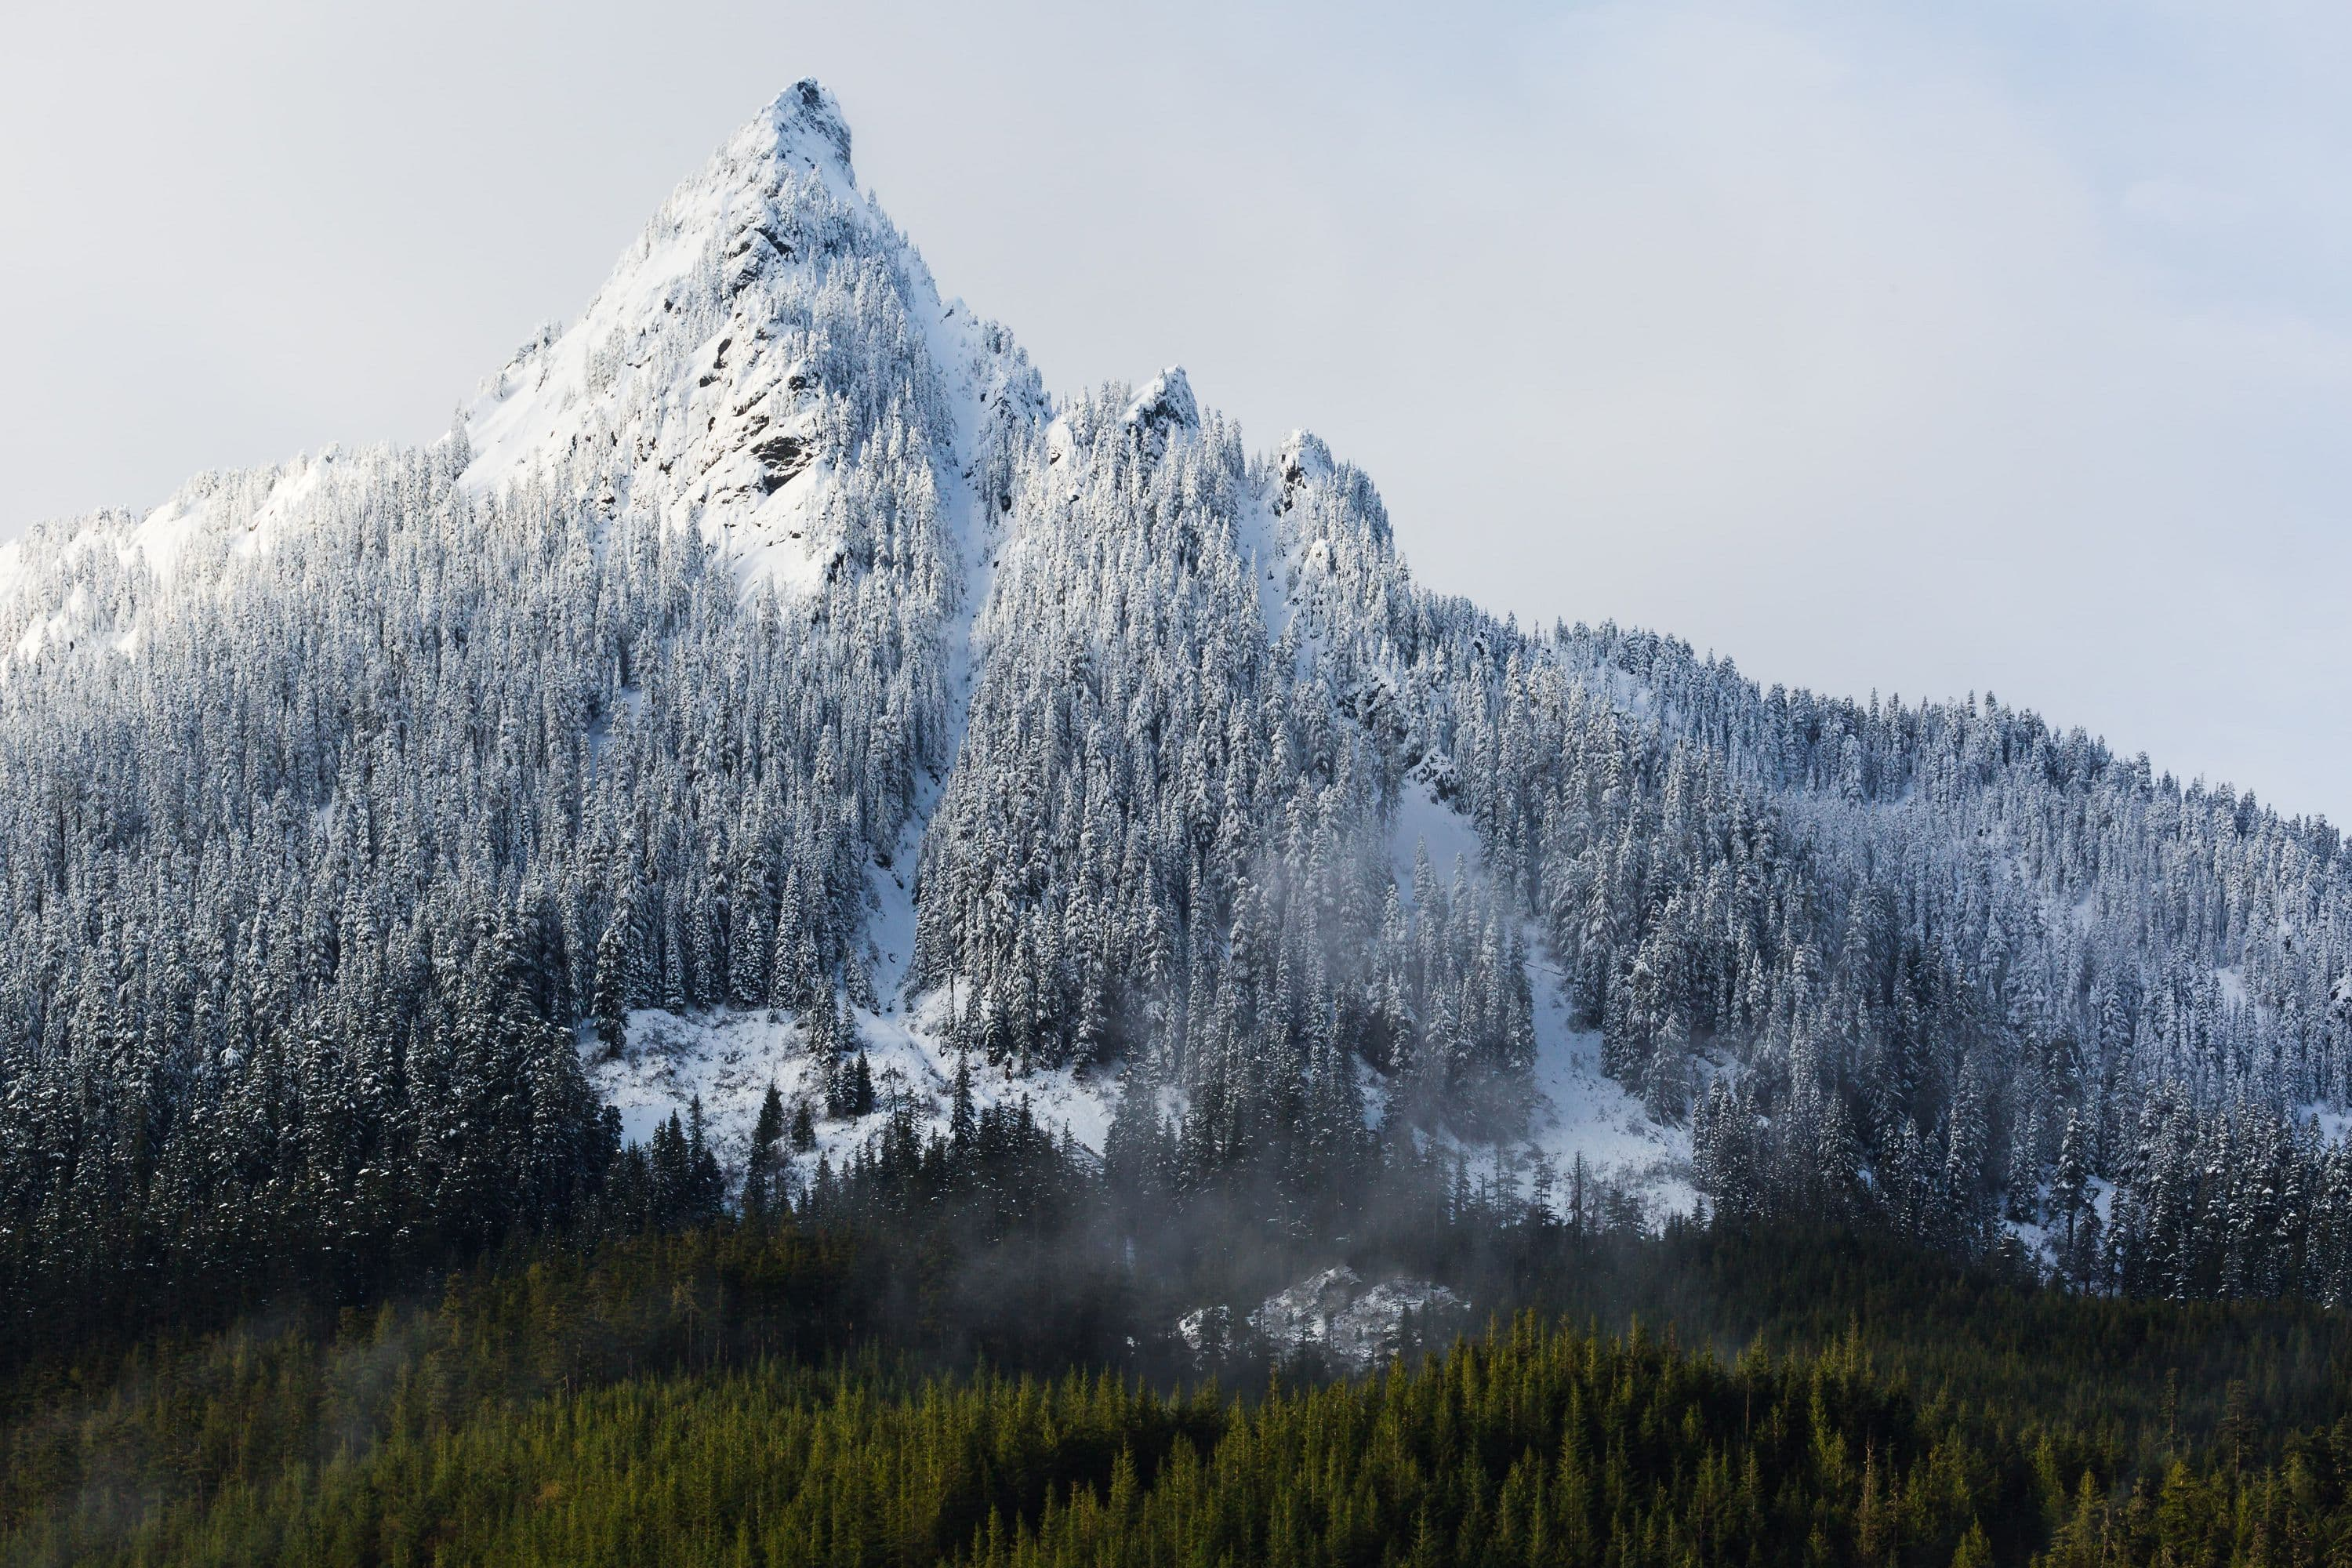 Snow peak and trees